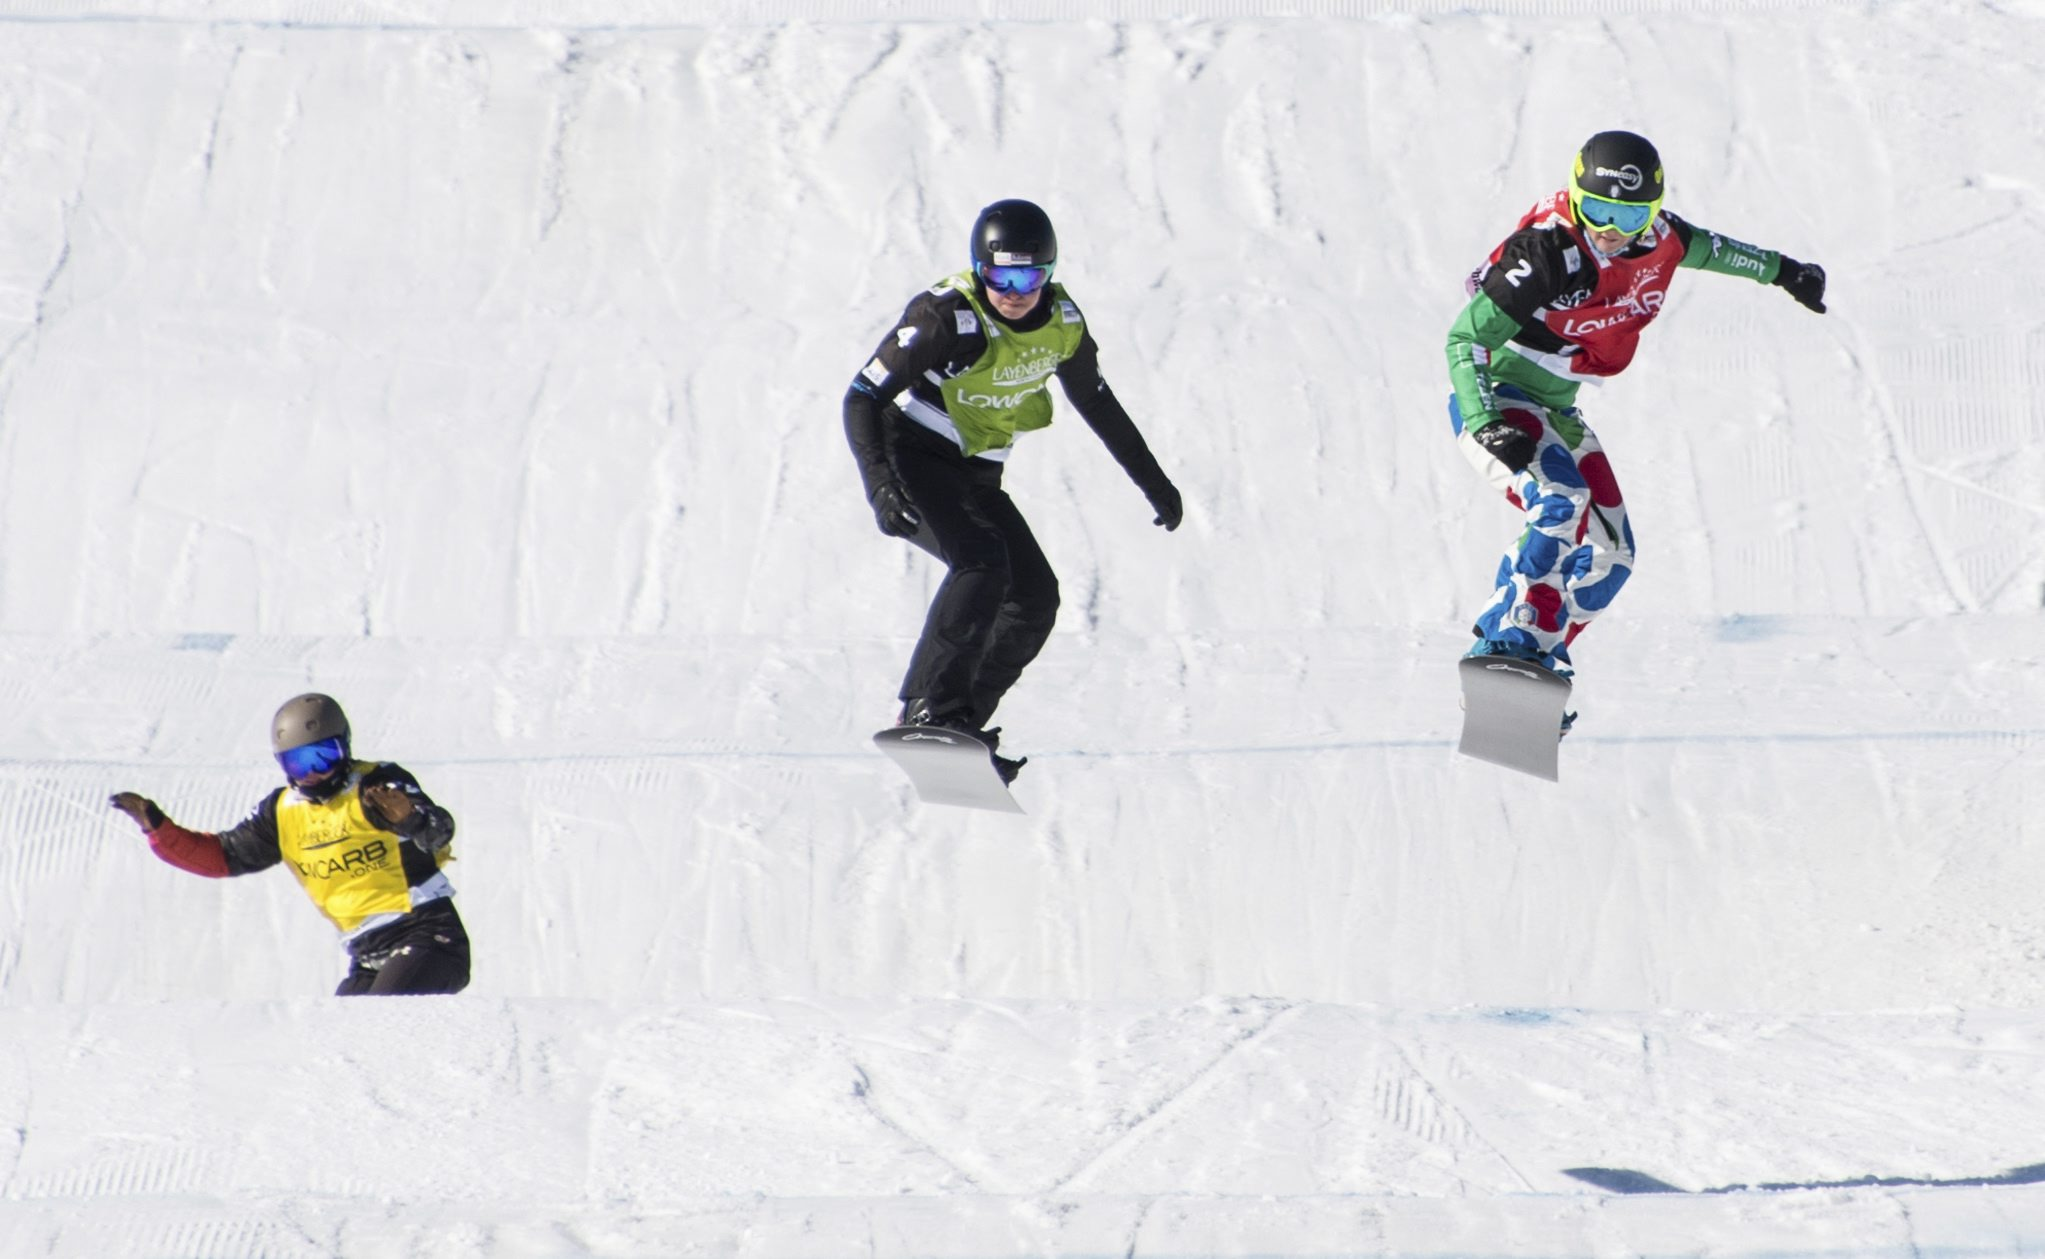 Winner Michaela Moioli from Italy, right, second placed Belle Brockhoff from Australia, center, (2nd place, c) and third placed Meryeta Odine from Canada, left, speed down the track during the Ladies' Snowboard Cross World Cup at Feldberg mountain in the Black Forest region, Germany,, Saturday, Feb. 11, 2017. ( Patrick Seeger/dpa via AP)